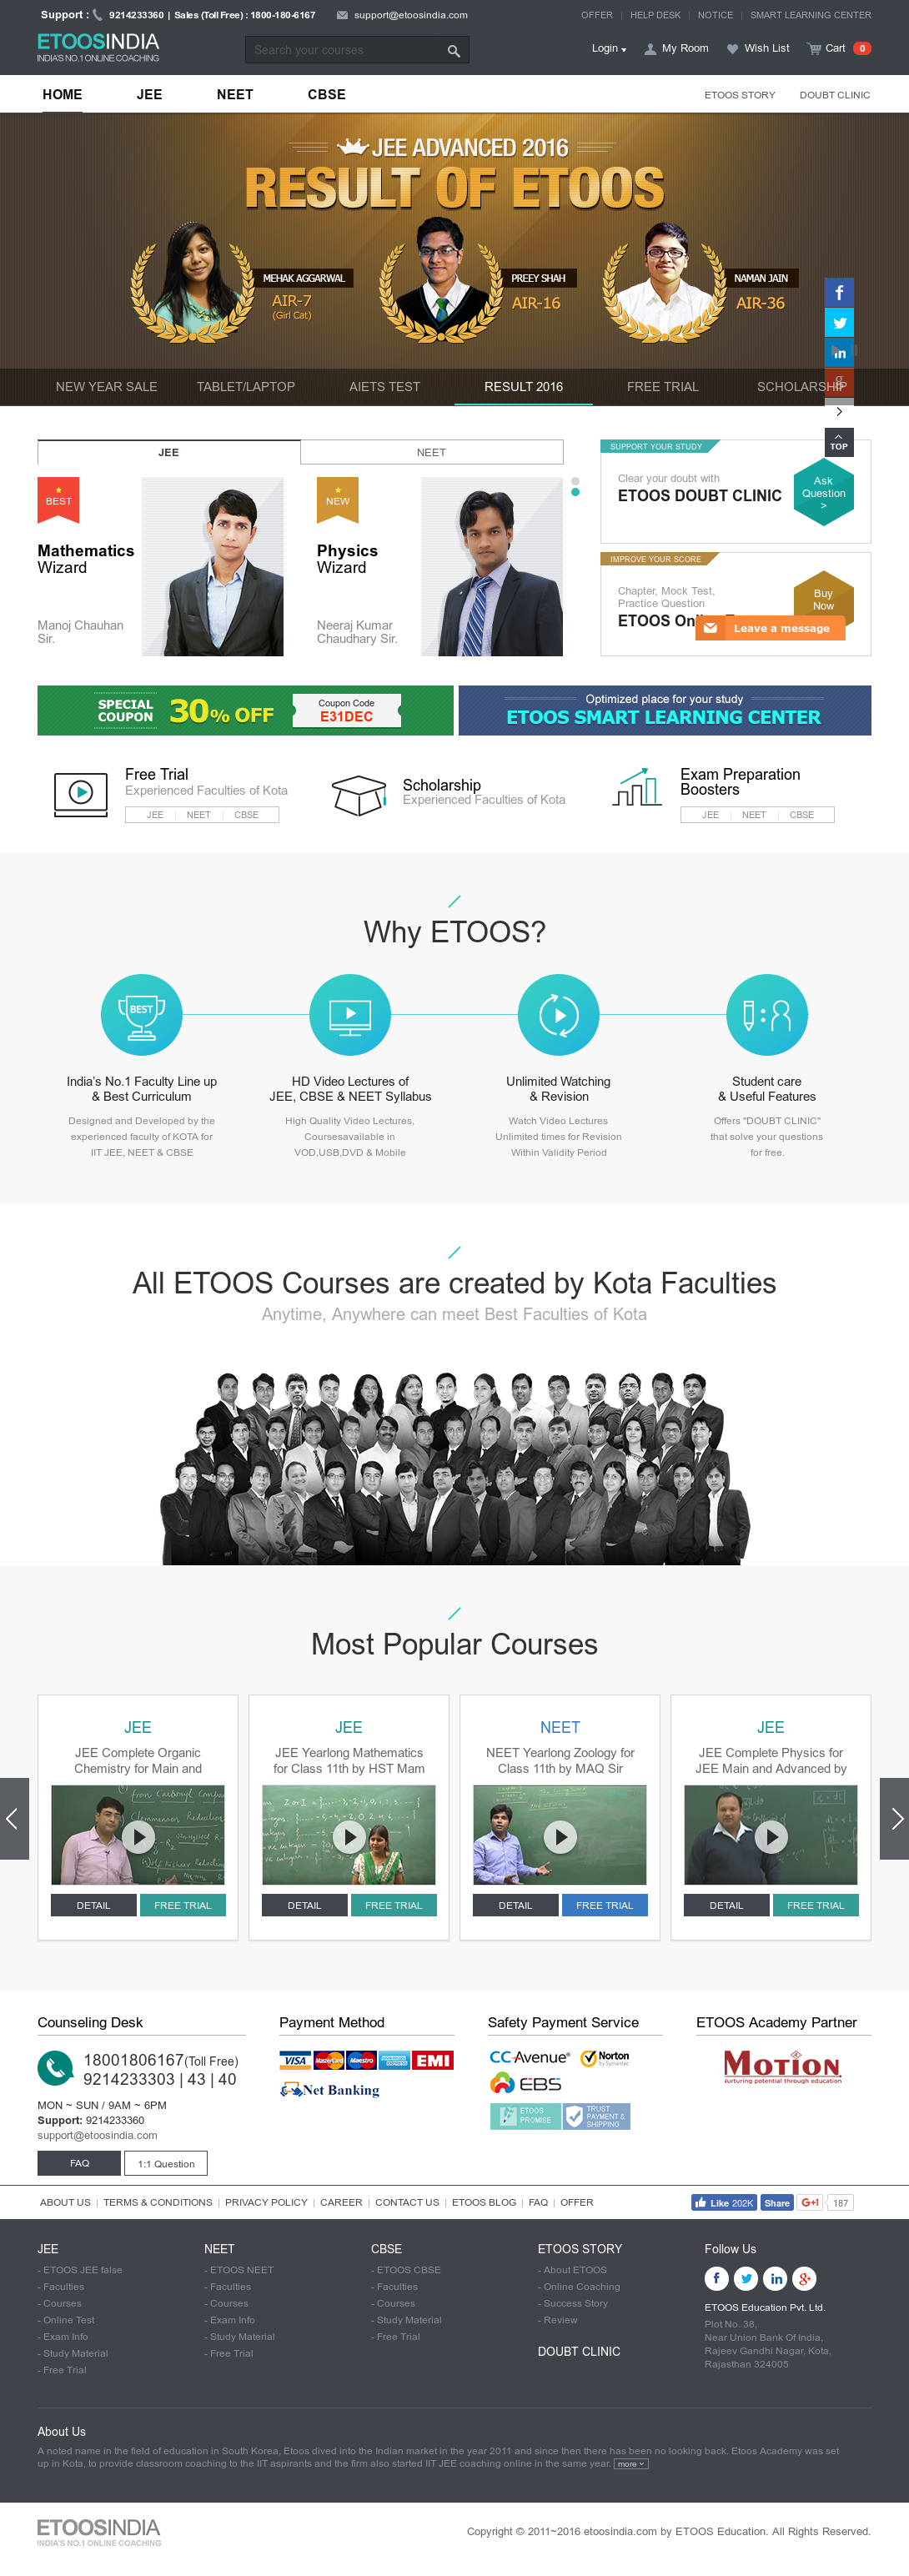 ETOOS Competitors, Revenue and Employees - Owler Company Profile